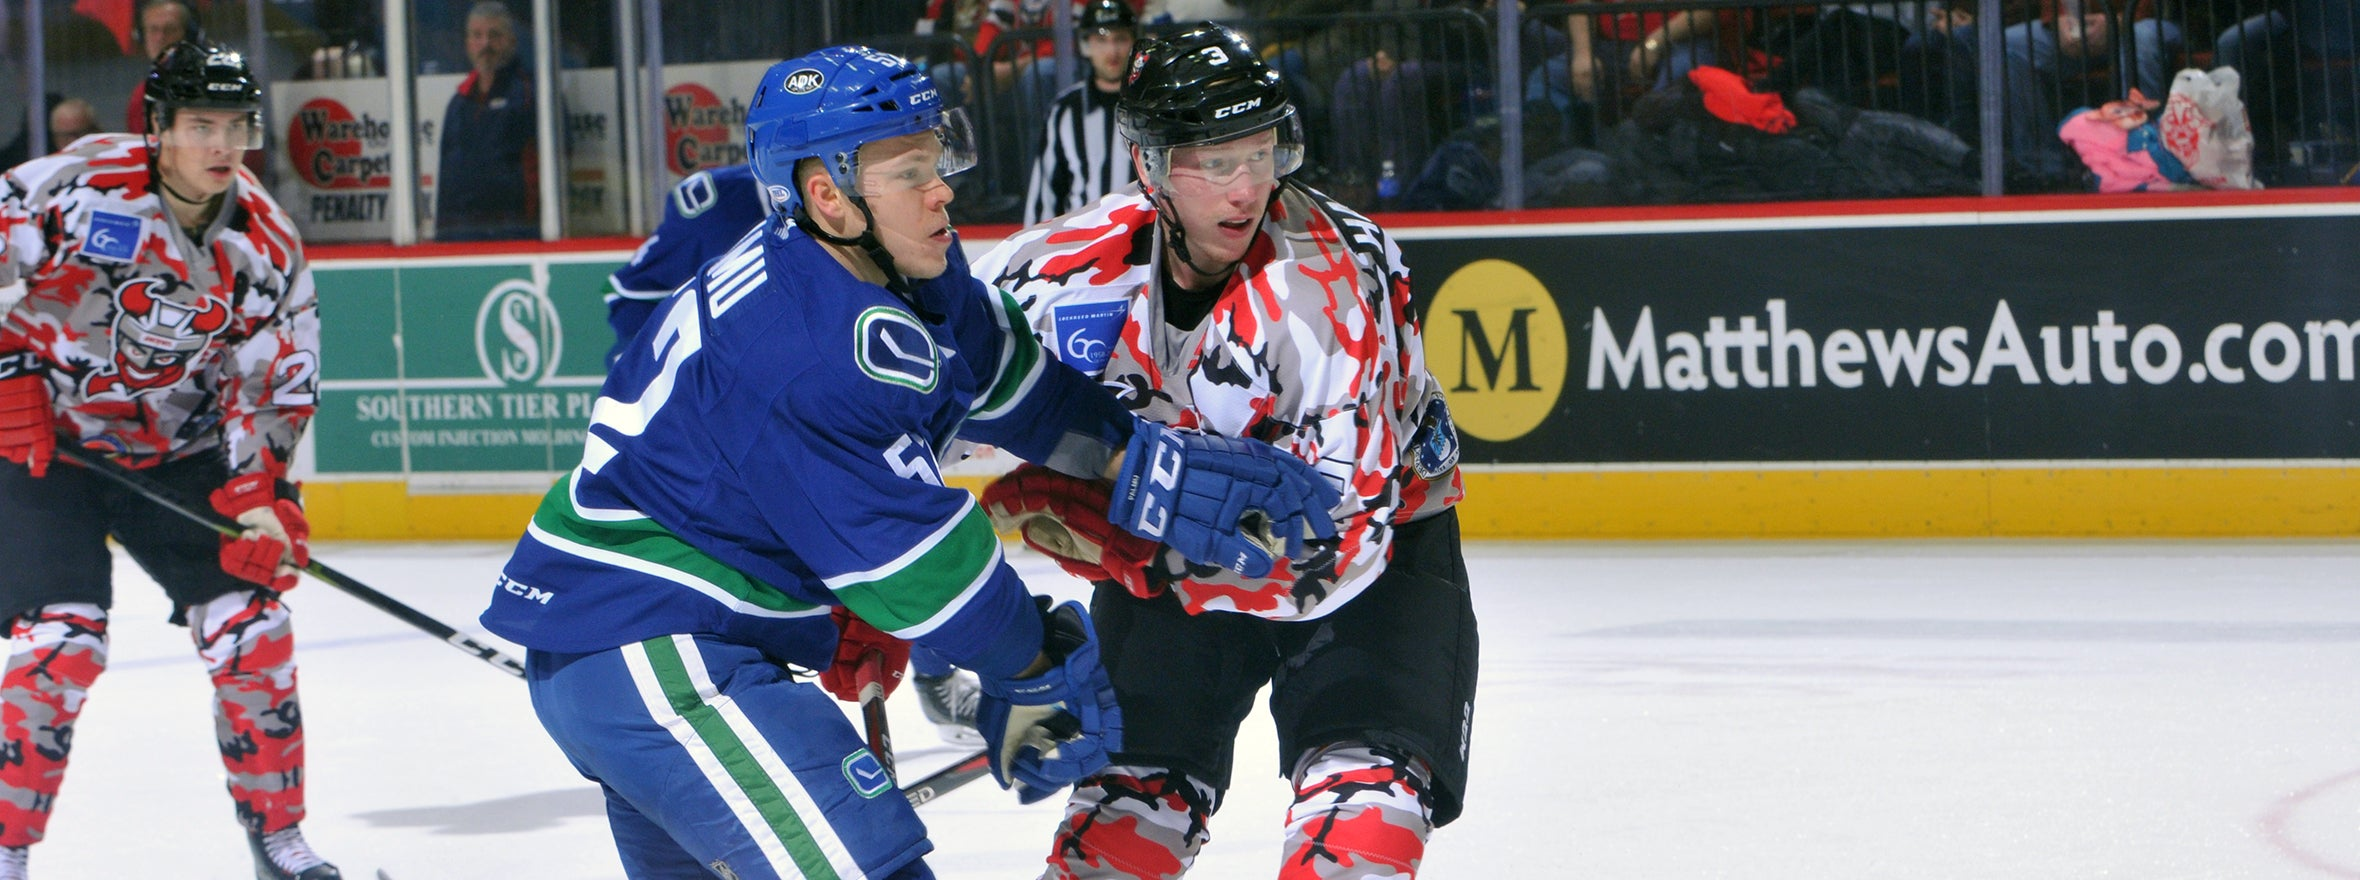 FOUR-GOAL FIRST PERIOD DOOMS COMETS IN LOSS TO DEVILS